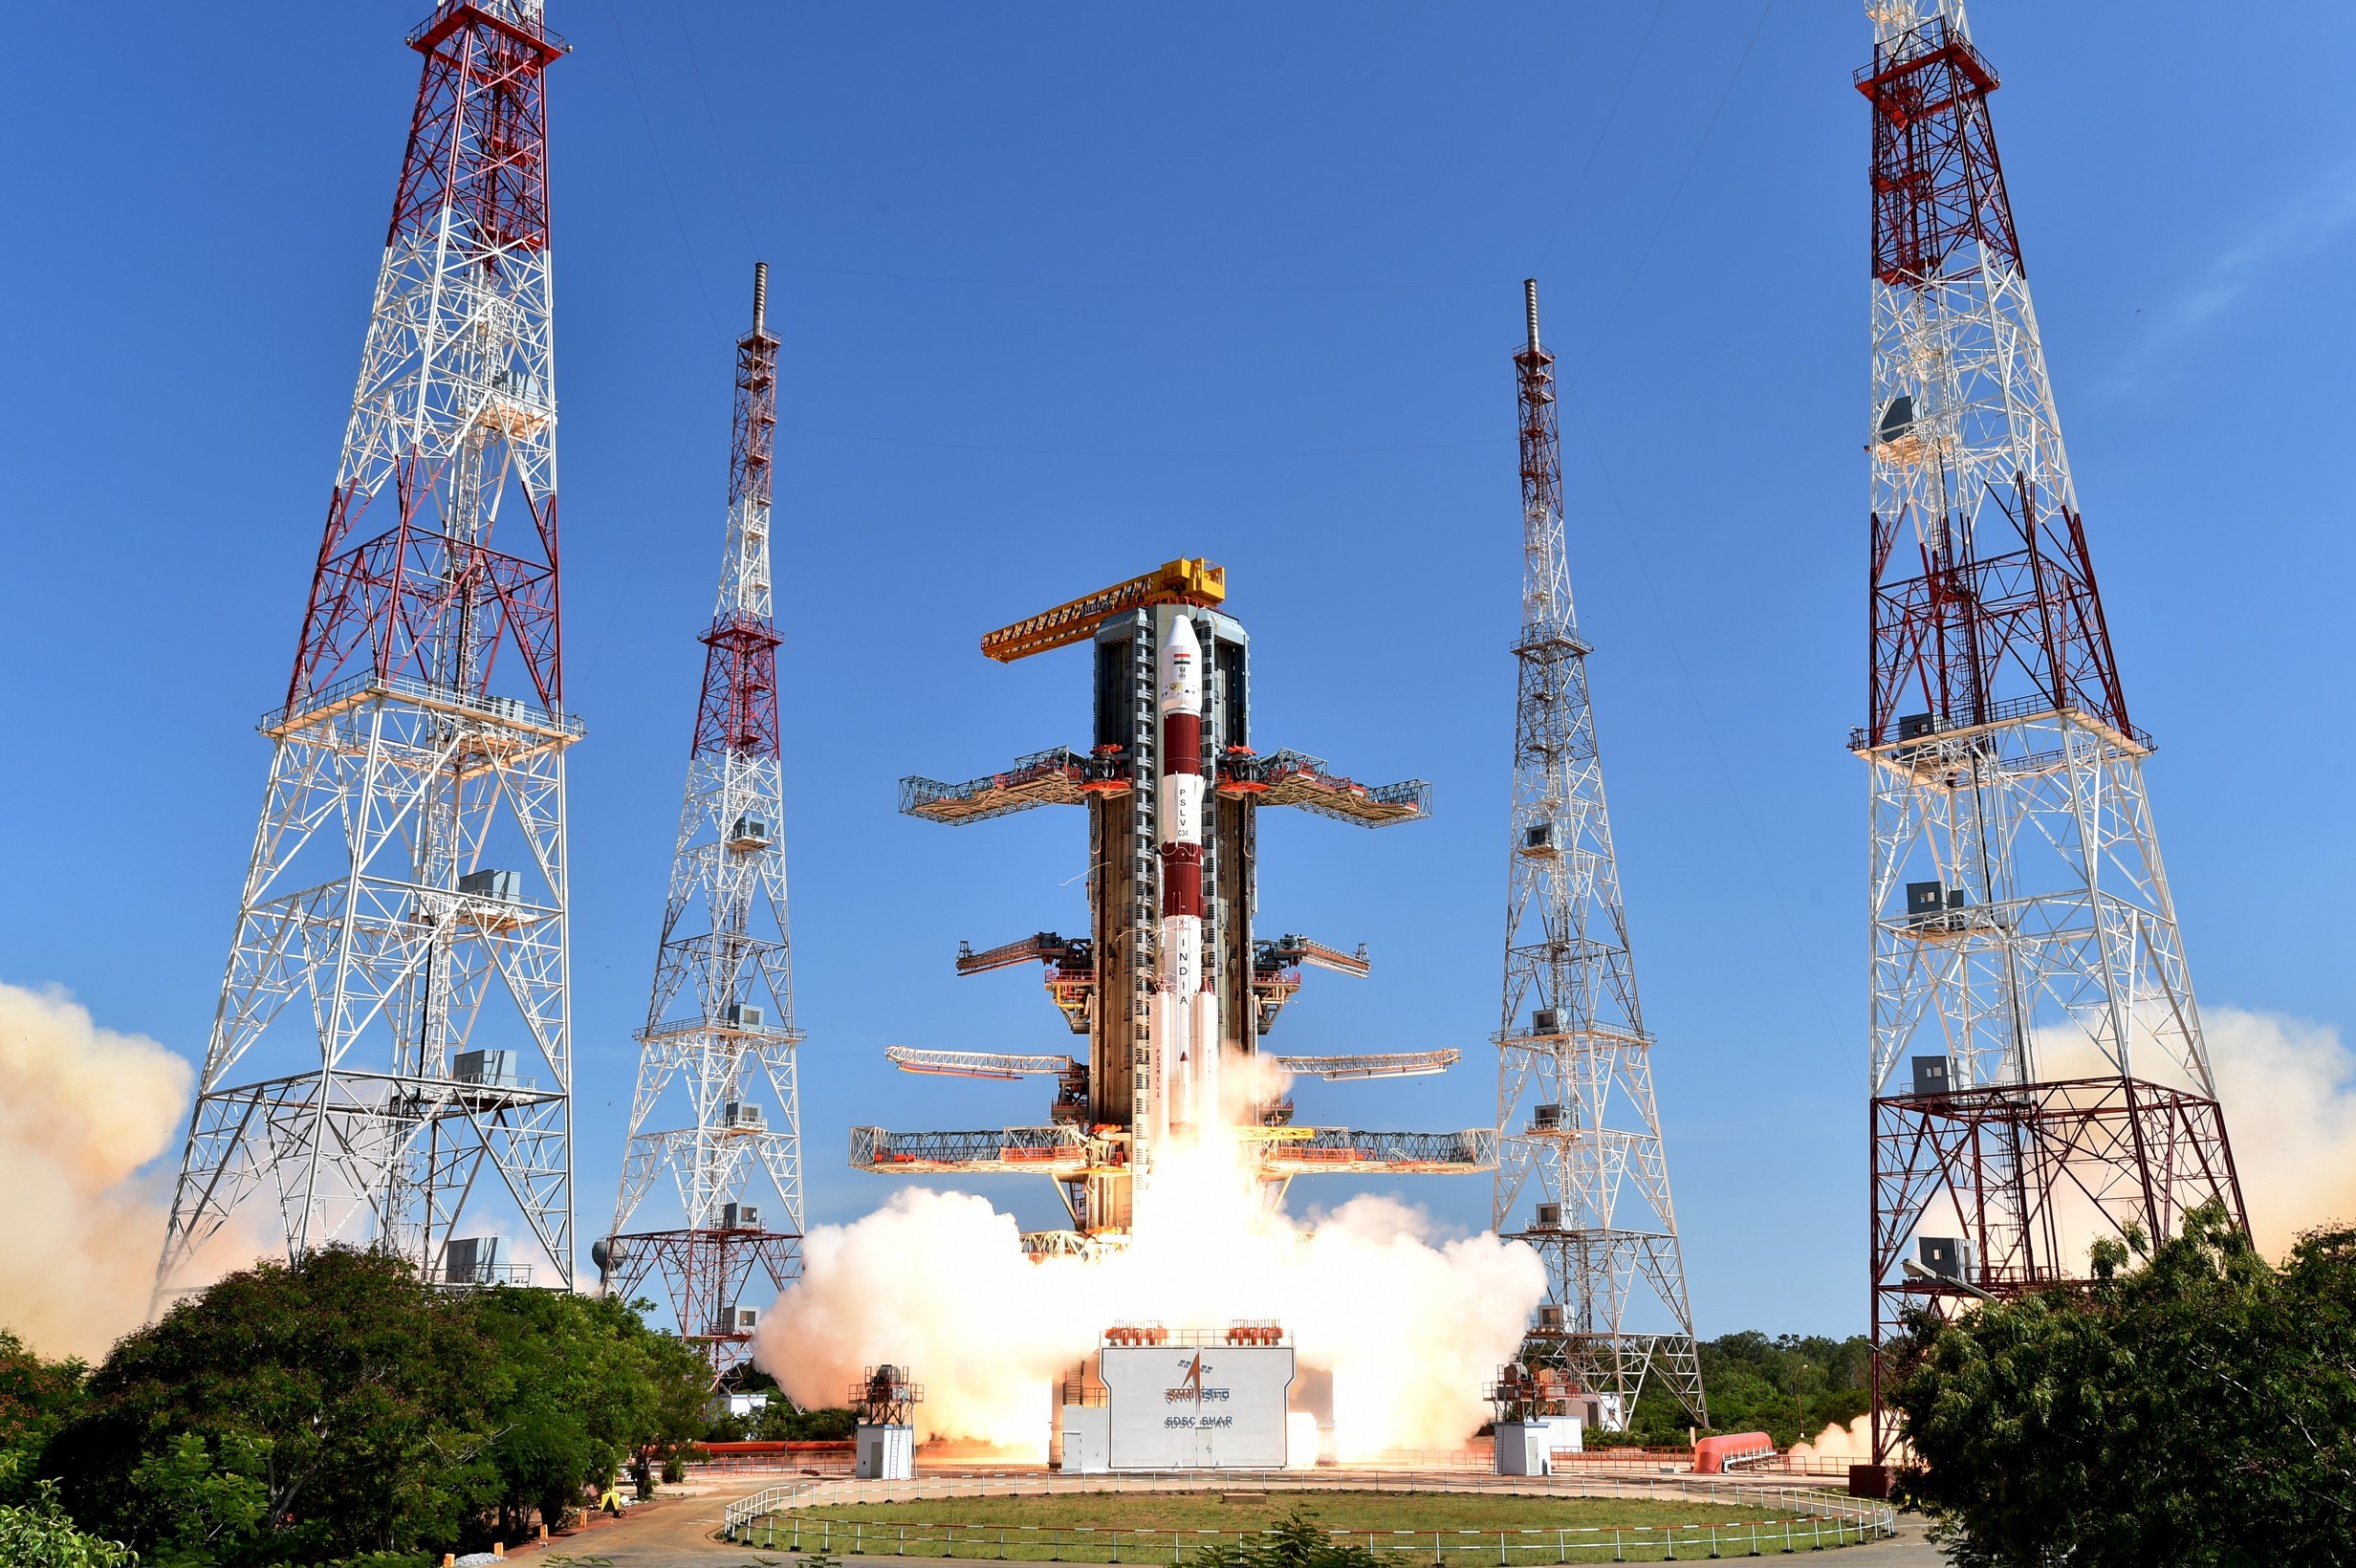 2pslv-c34takeoff-view2